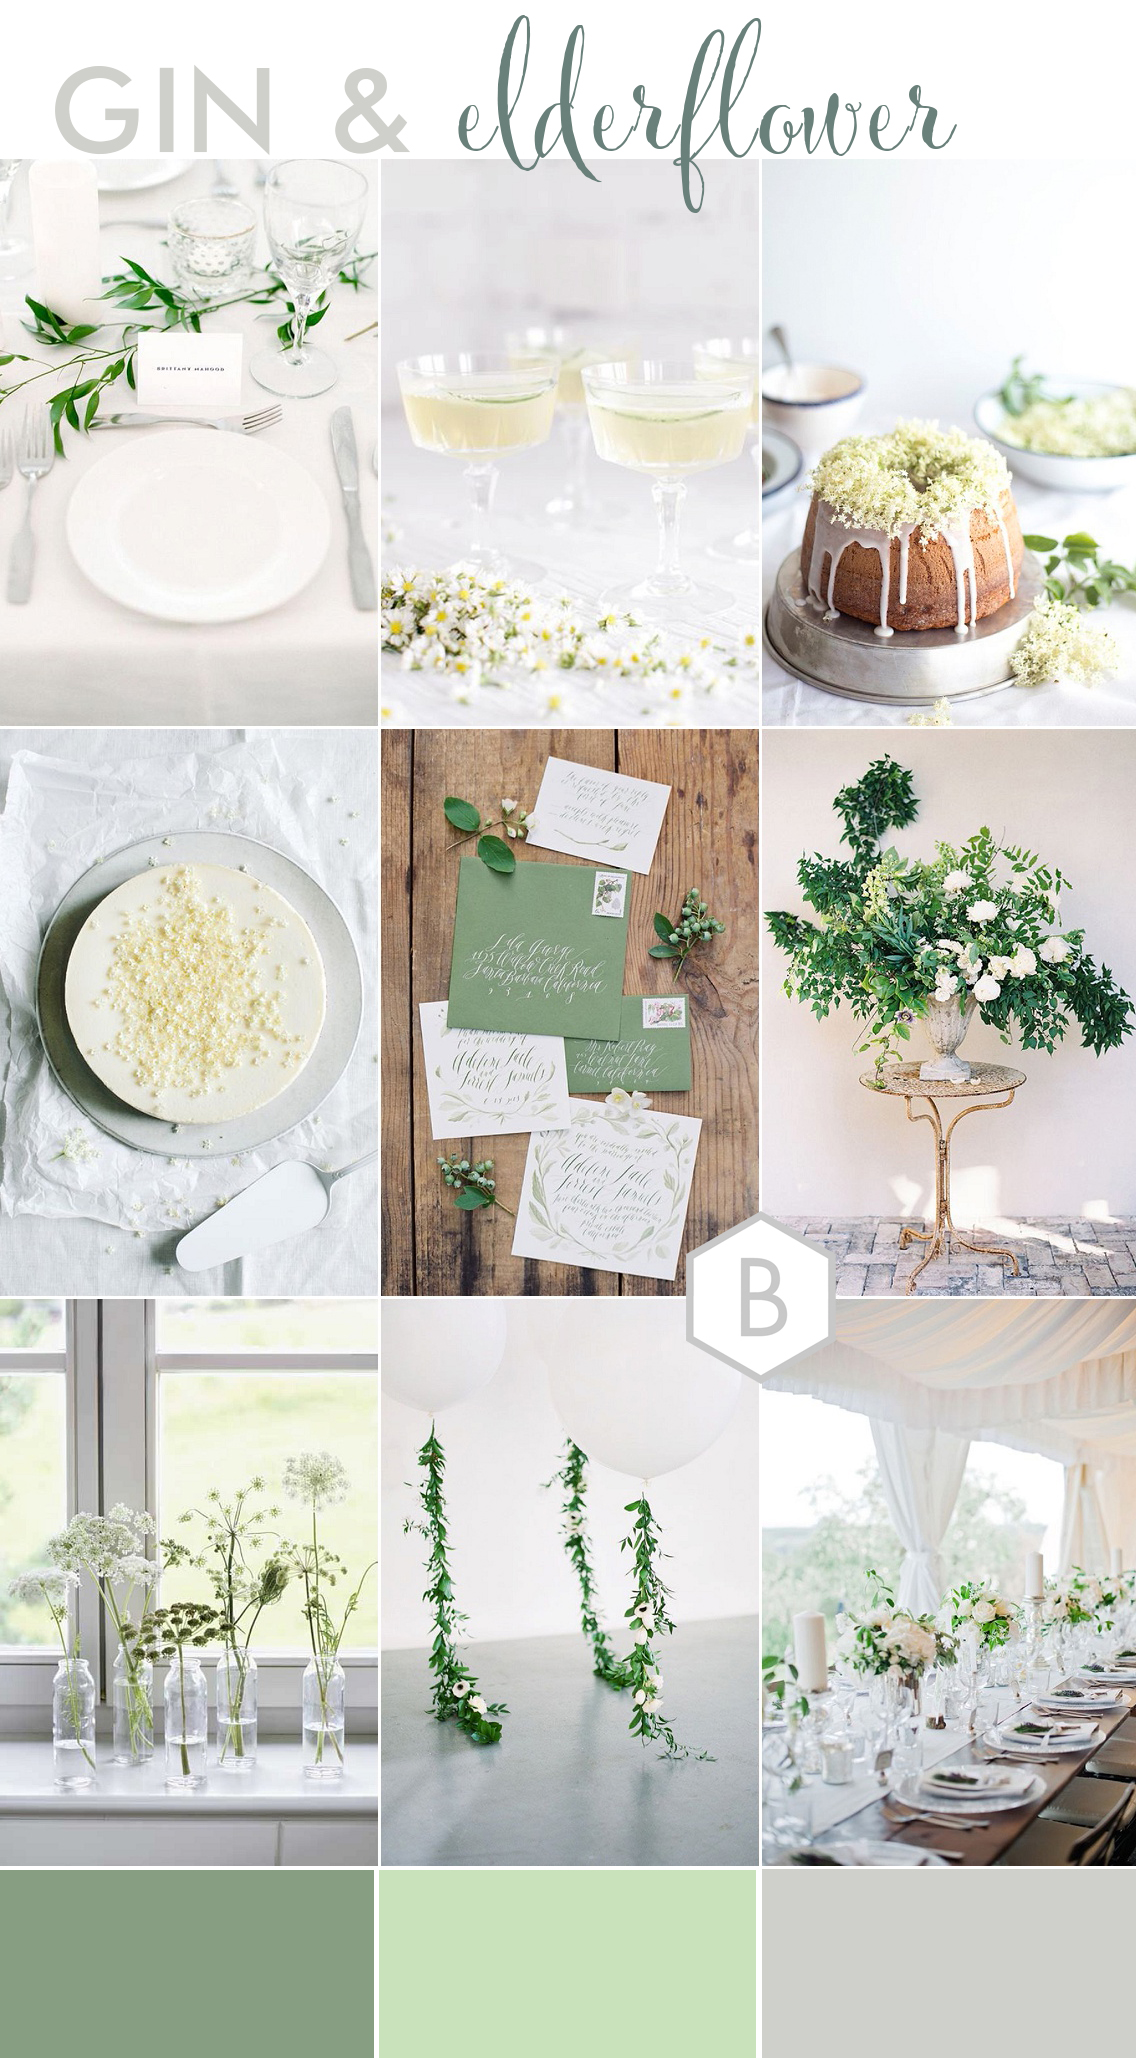 bloved-lifestyle-blog-gin-elderflower-summer-garden-party